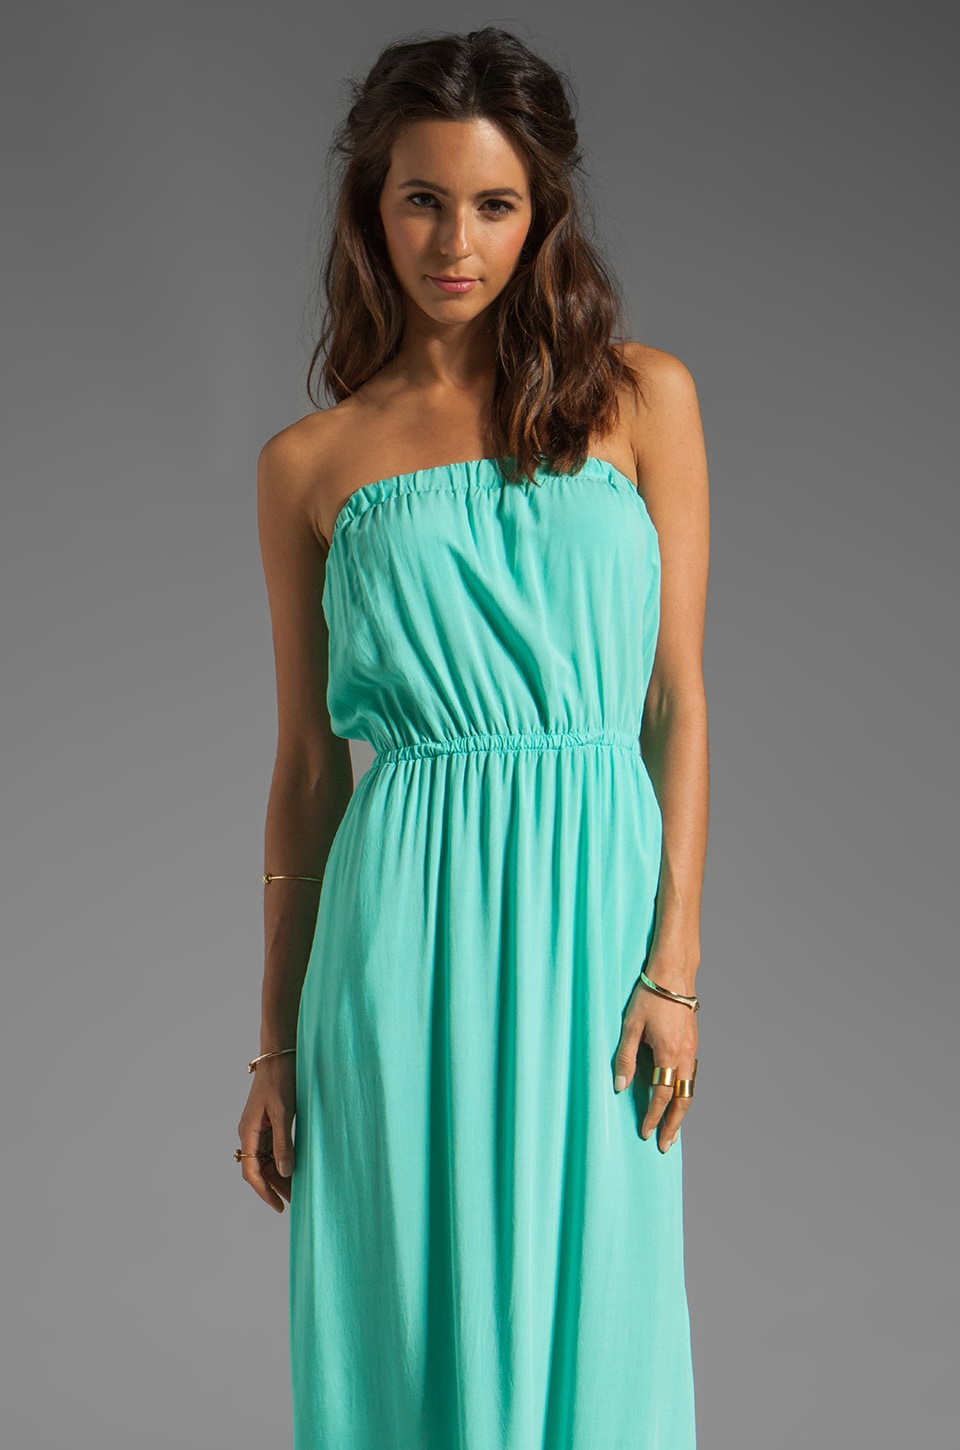 Splendid Maxi Dress in Waterfall